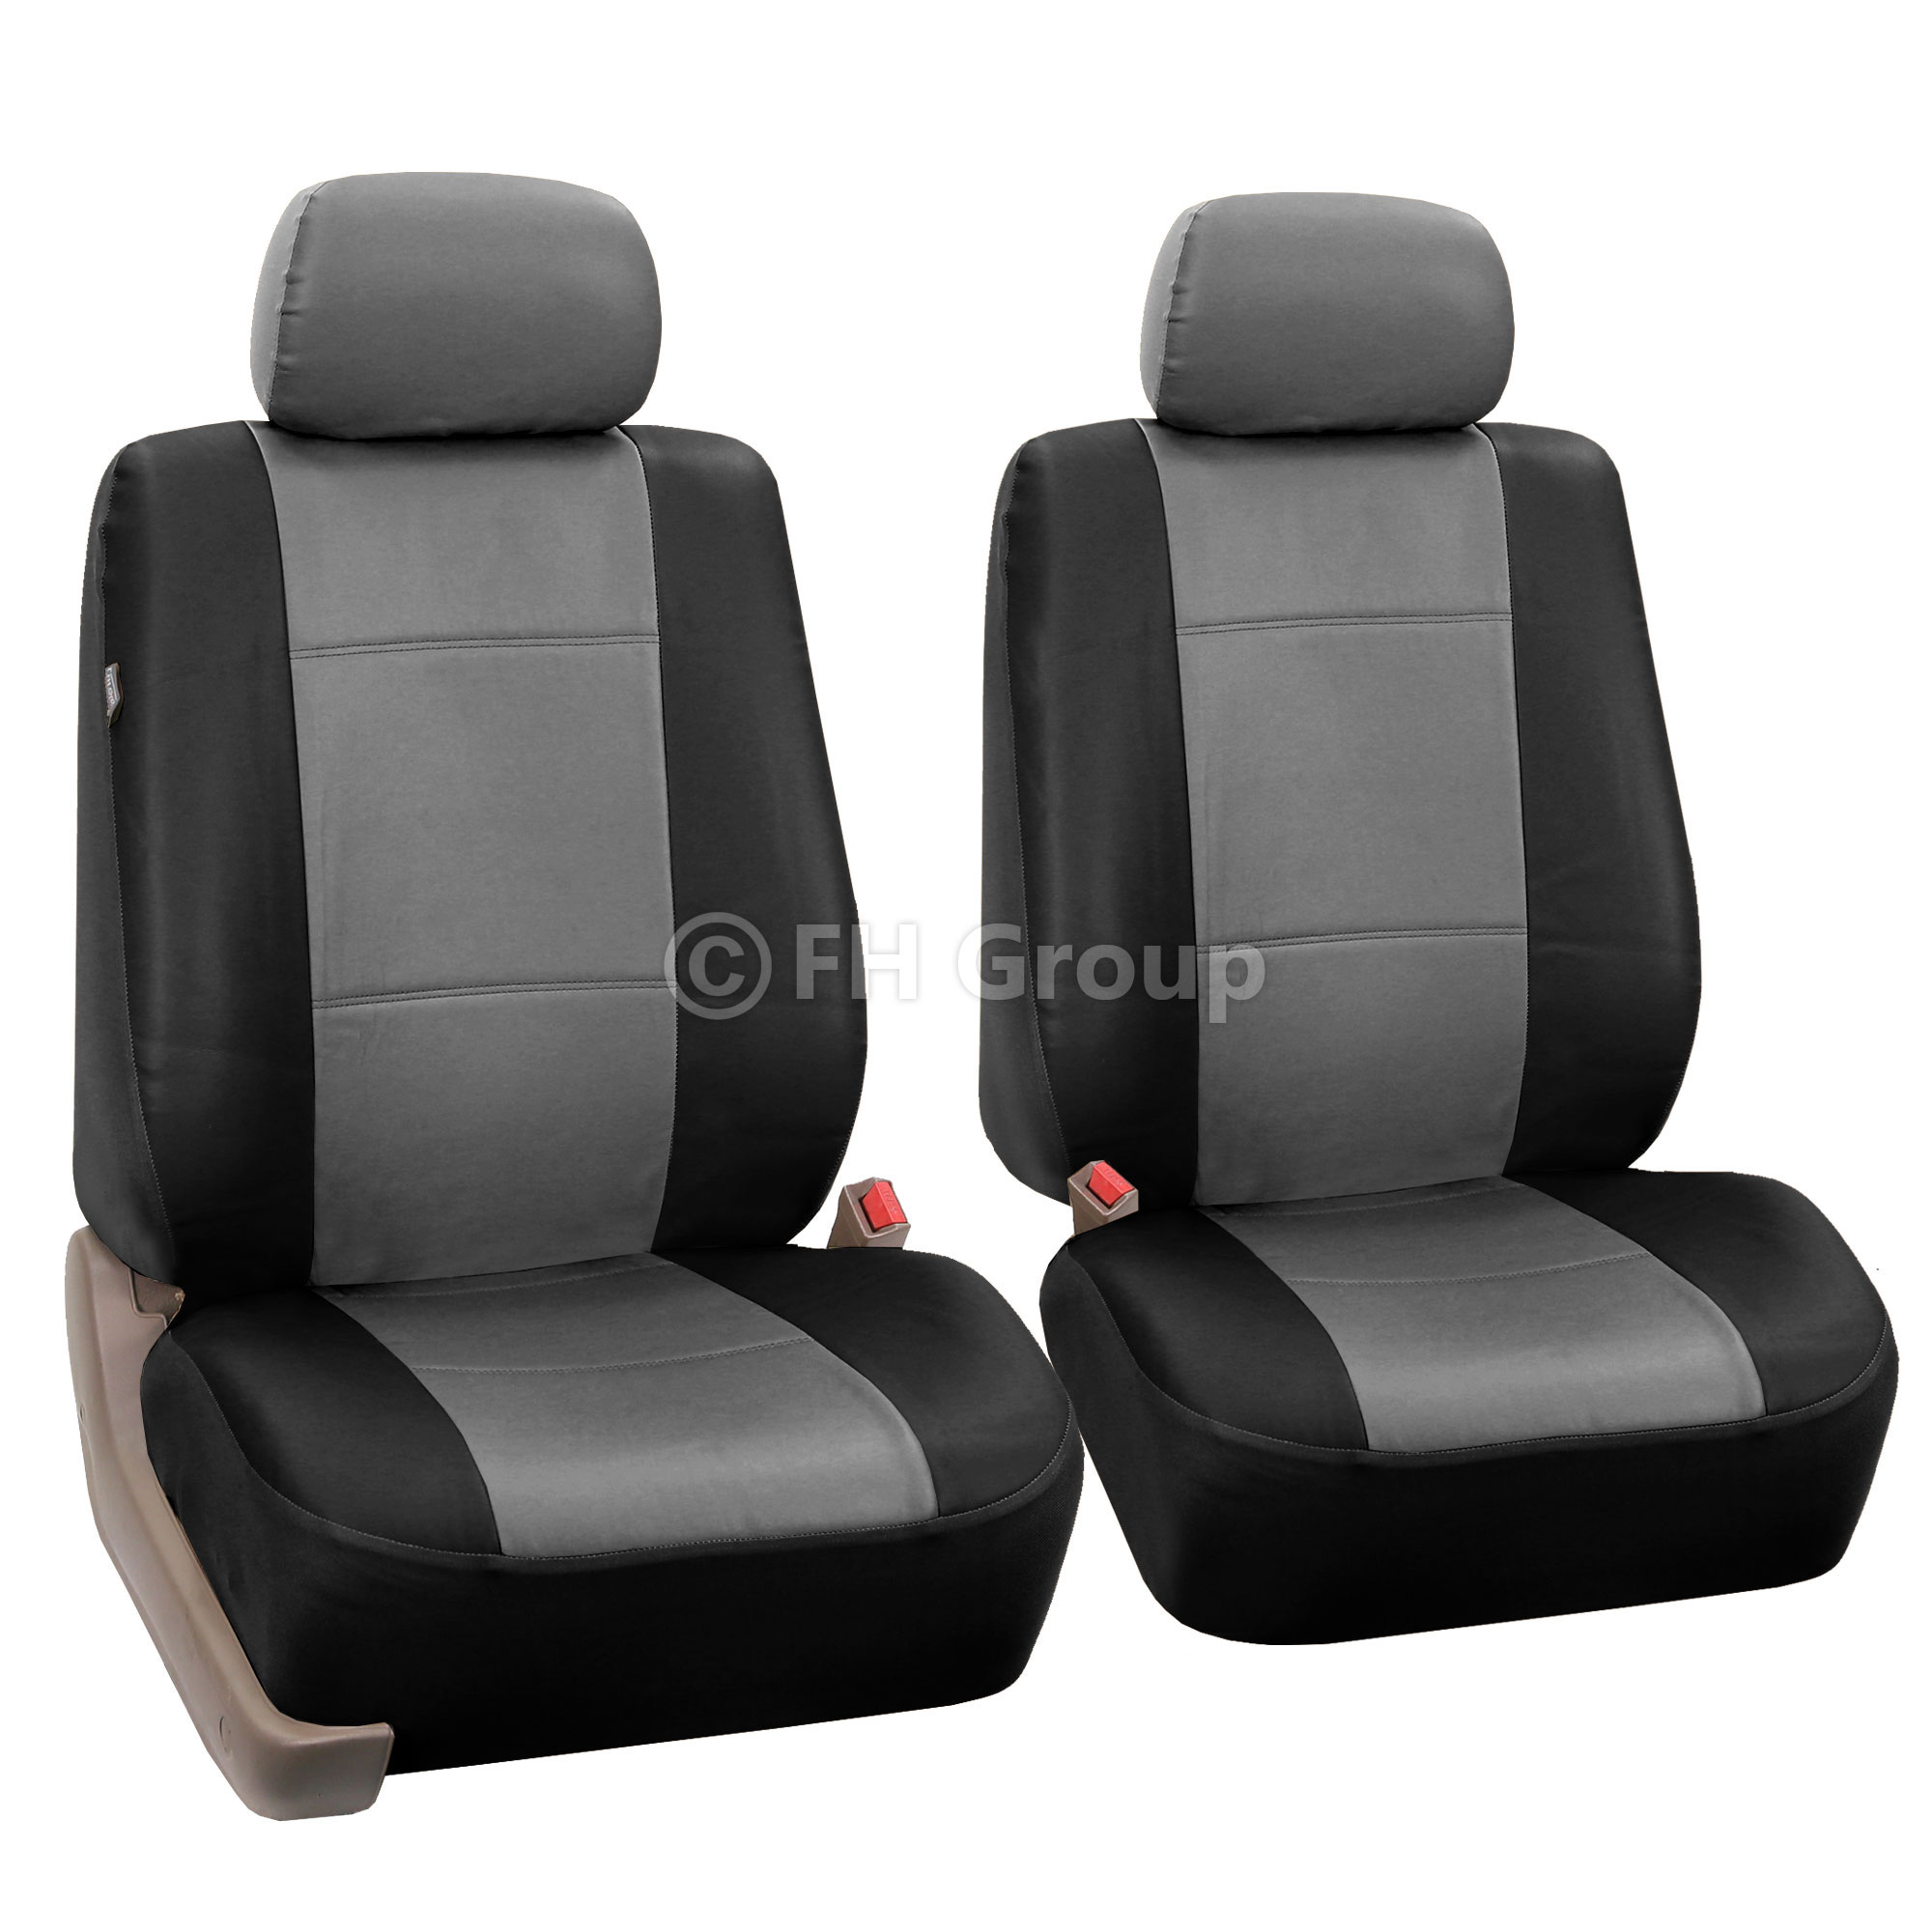 Very Impressive portraiture of PU Leather Car Seat Covers w. Carpet Floor Mats for Split Bench eBay with #AA2421 color and 2000x2000 pixels